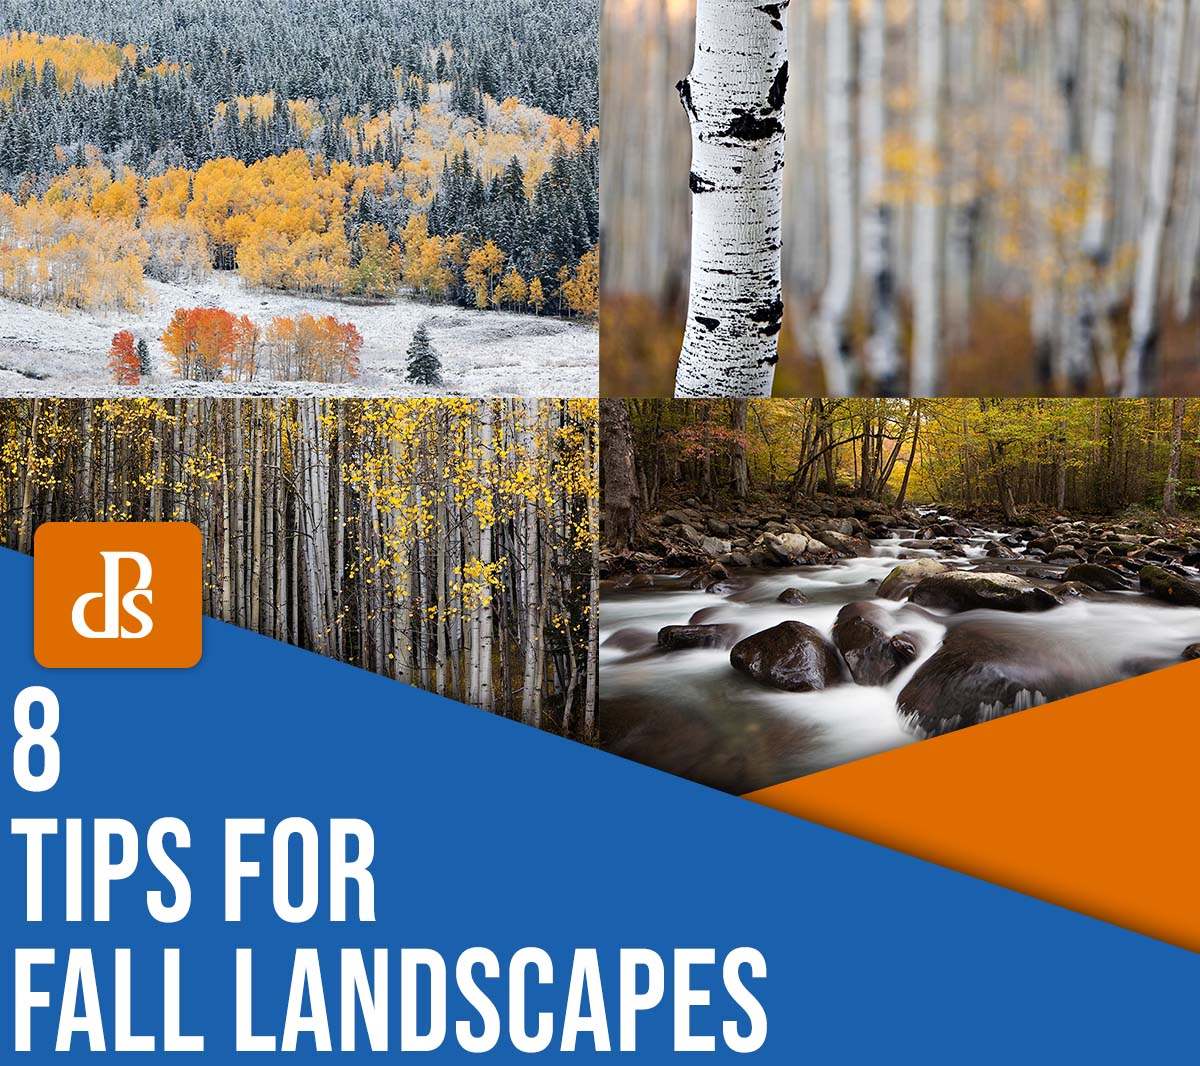 8 tips for fall landscape photography